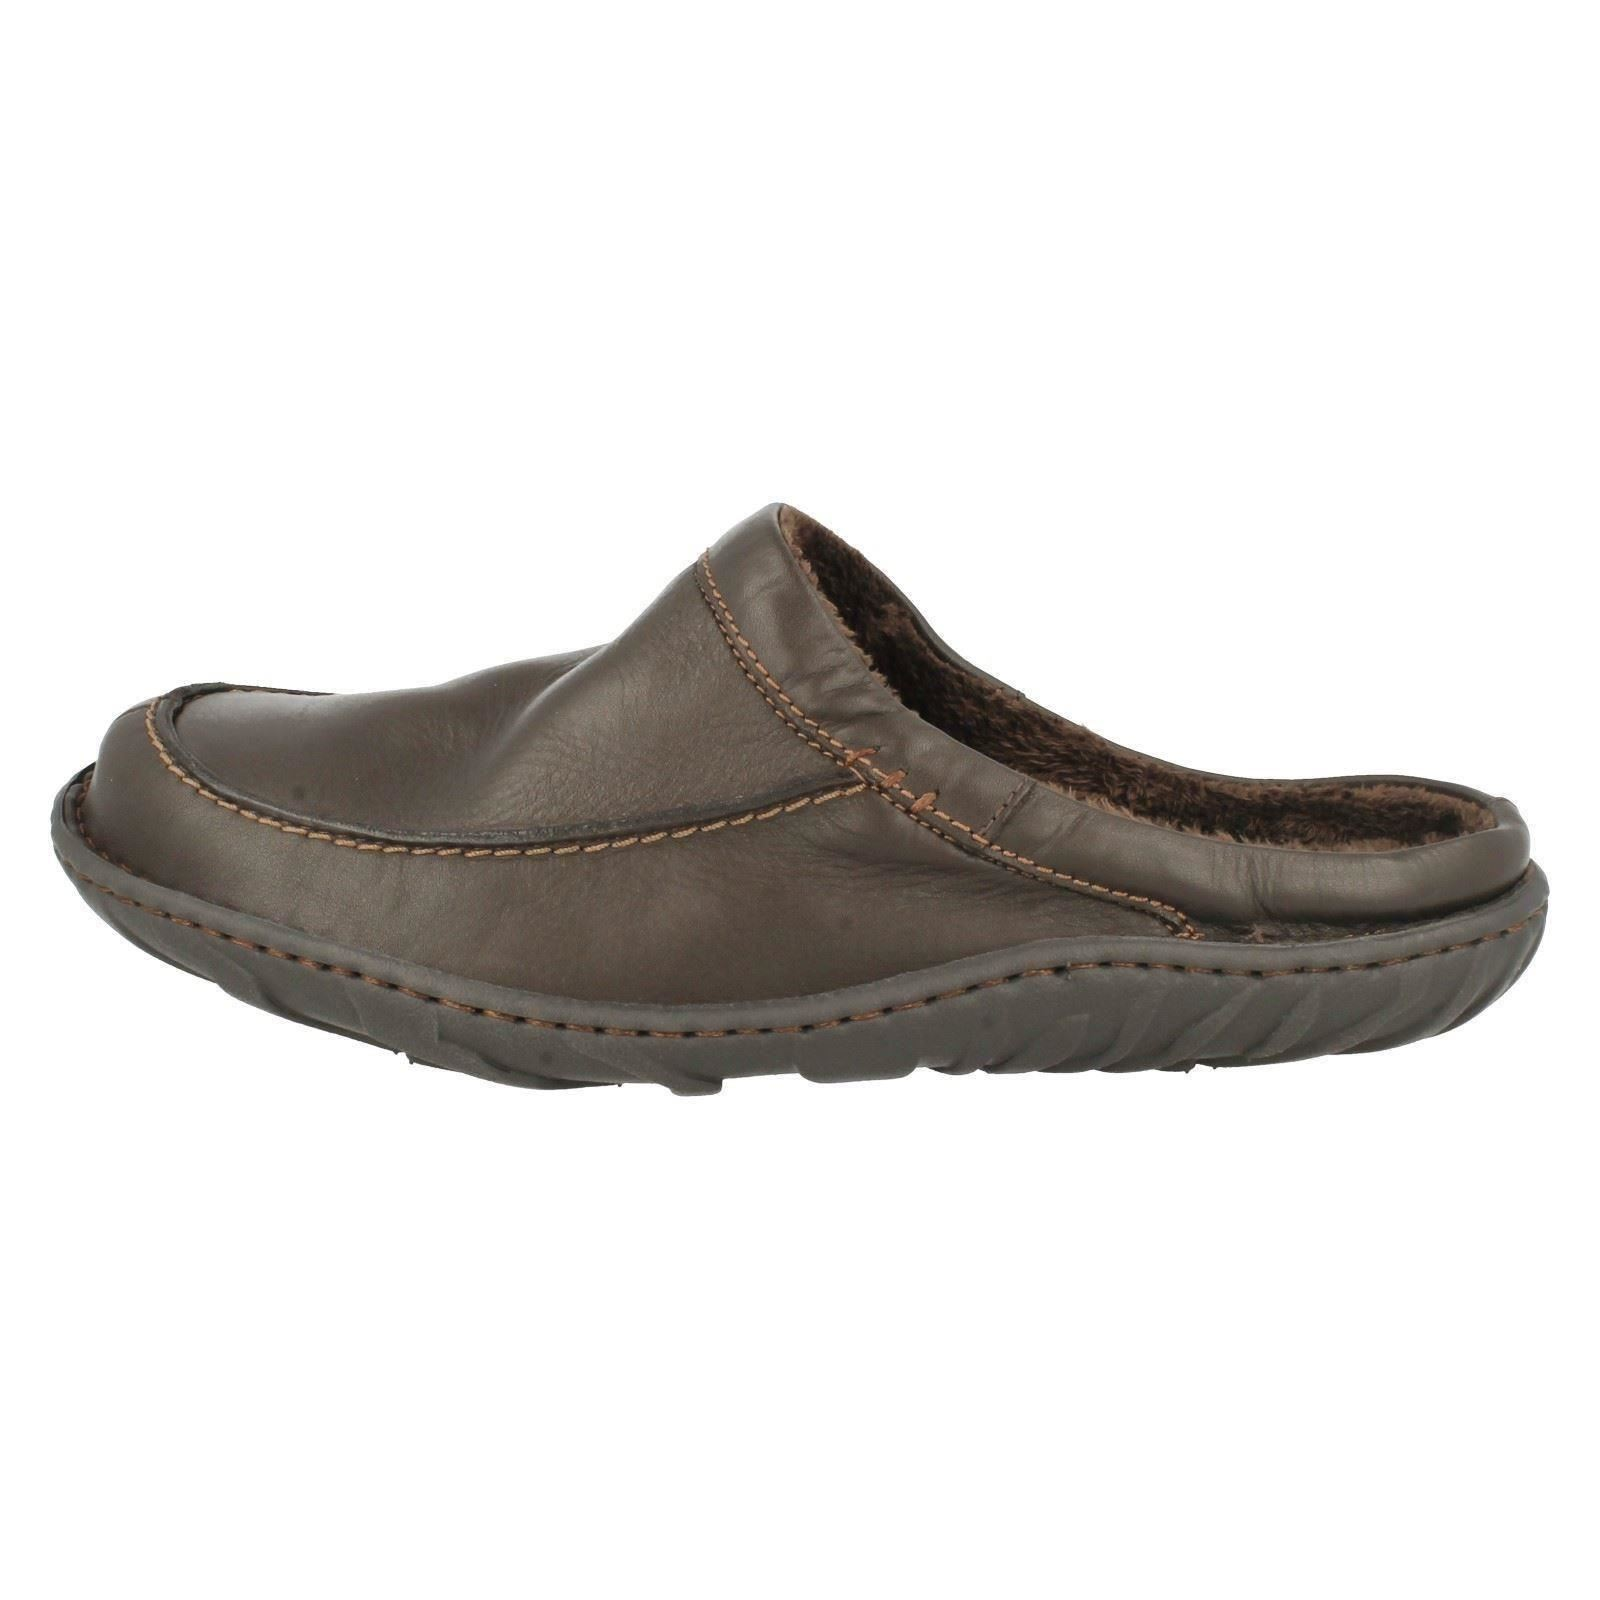 Mens Leather Slippers Sale: Save Up to 40% Off! Shop janydo.ml's huge selection of Mens Leather Slippers - Over 20 styles available. FREE Shipping & Exchanges, and a % price guarantee!